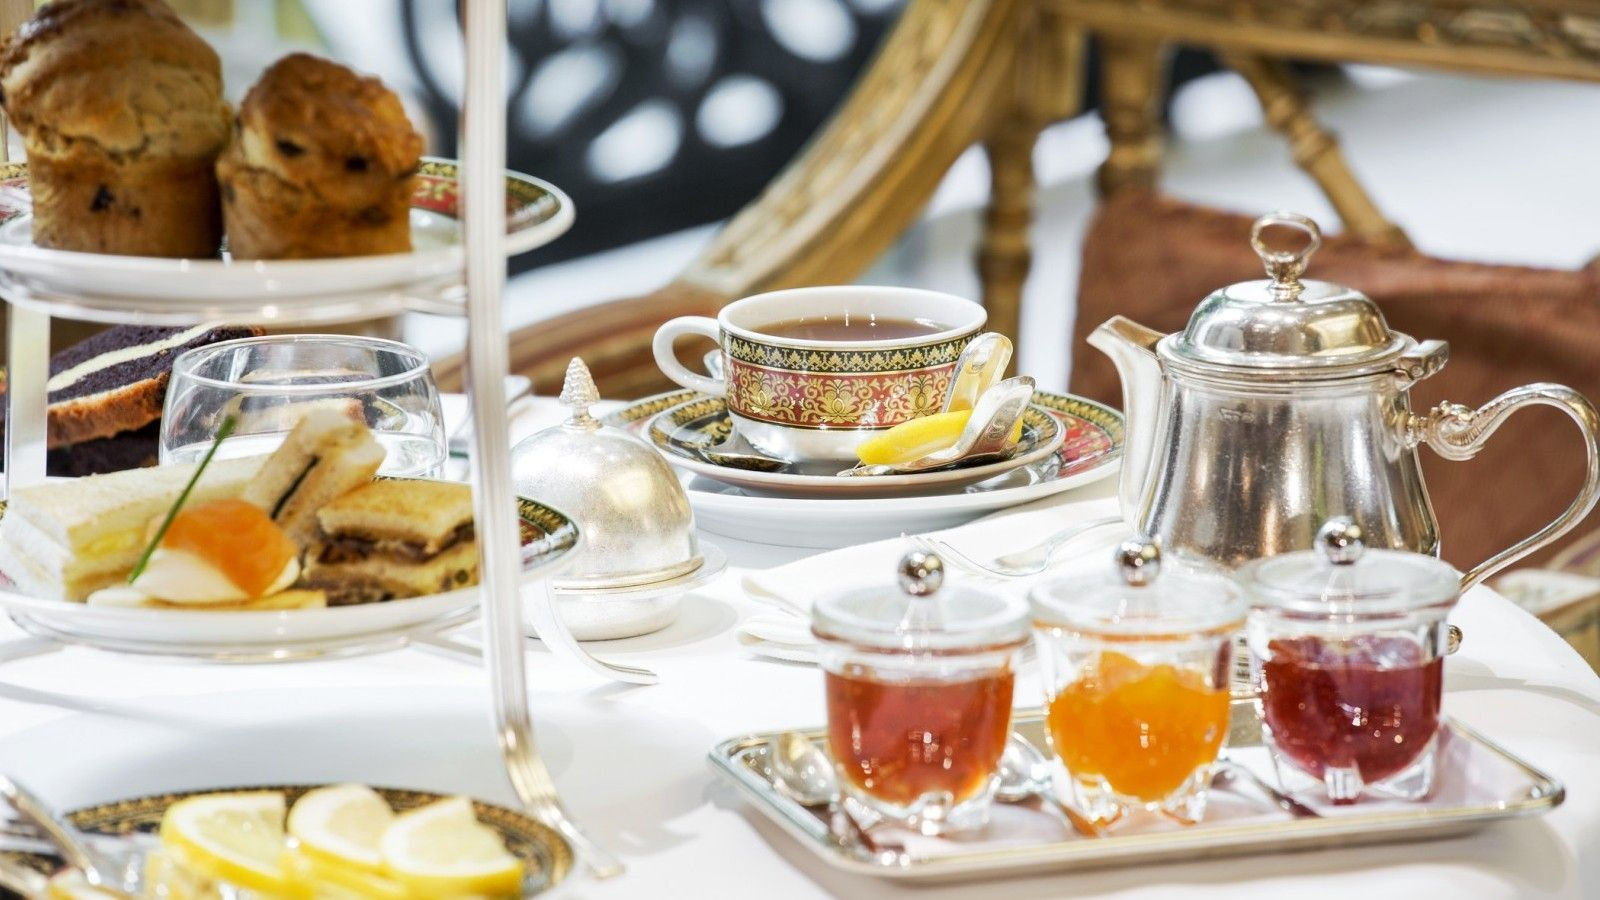 Winter-Garden-City-Lounge-High-Tea-Savory-snacks-all-day-lounge-Hotel-Grande-Bretagne-Athens